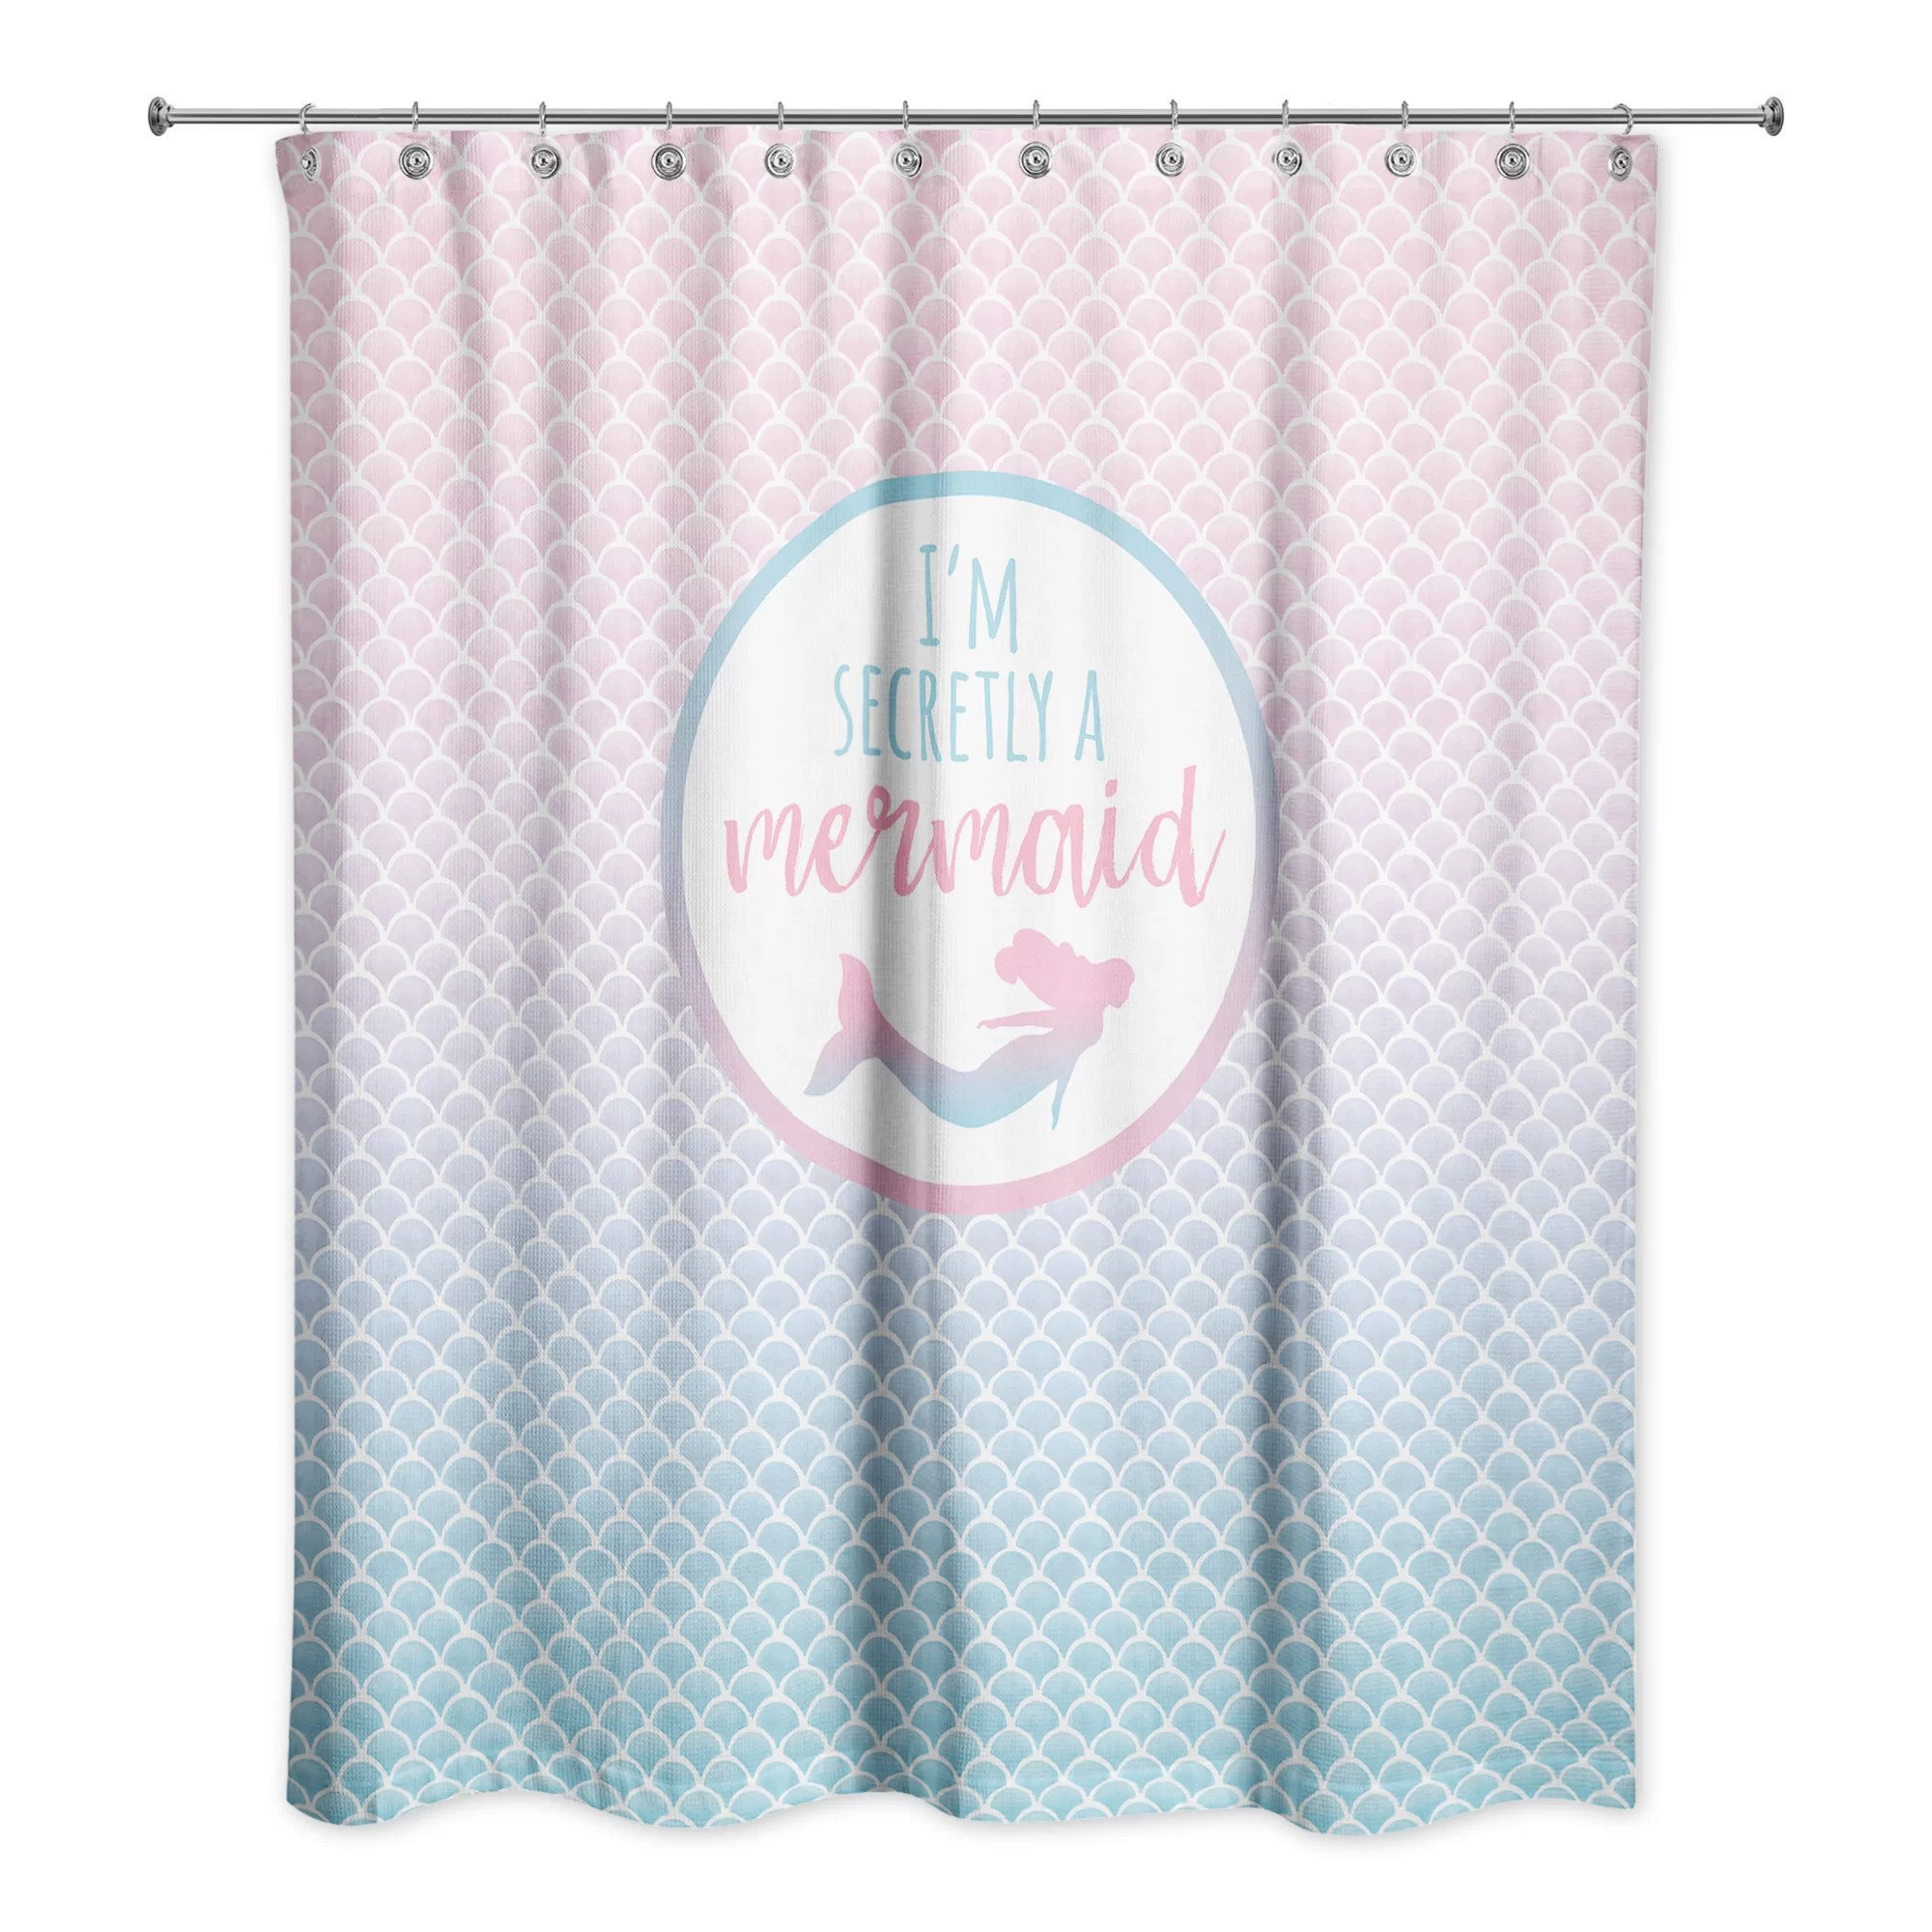 Mermaid Scale Shower Curtain Jarret Secretly A Mermaid Single Shower Curtain